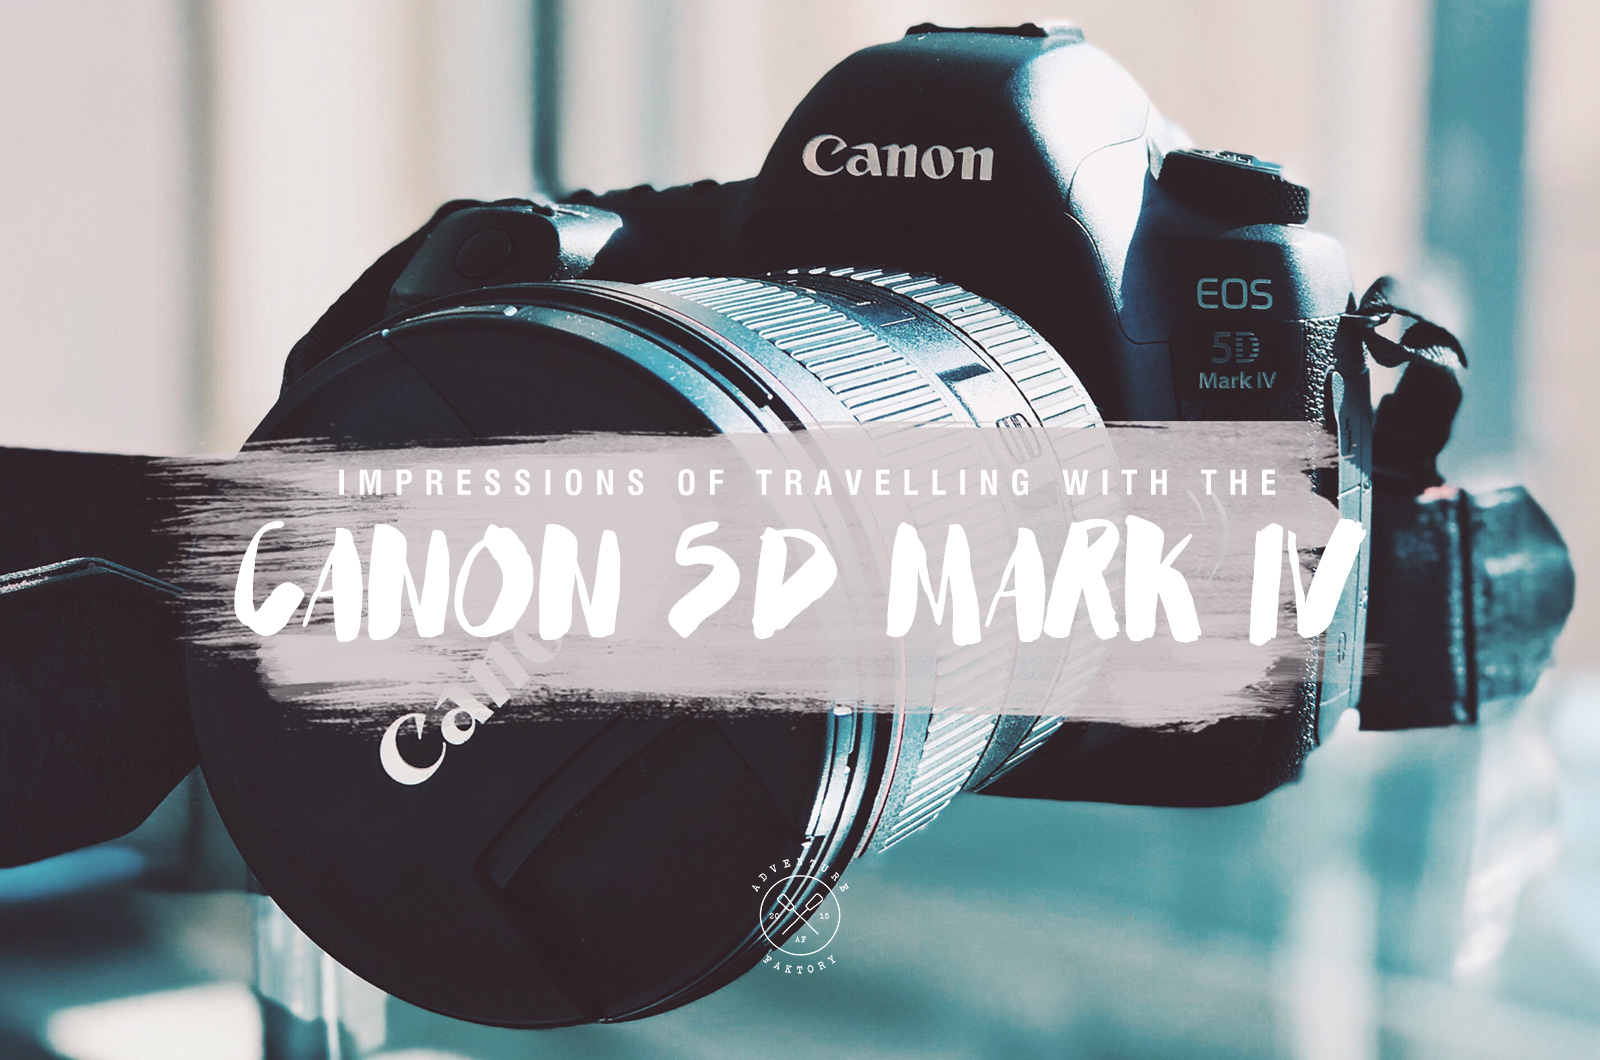 Review: Canon 5D Mark IV